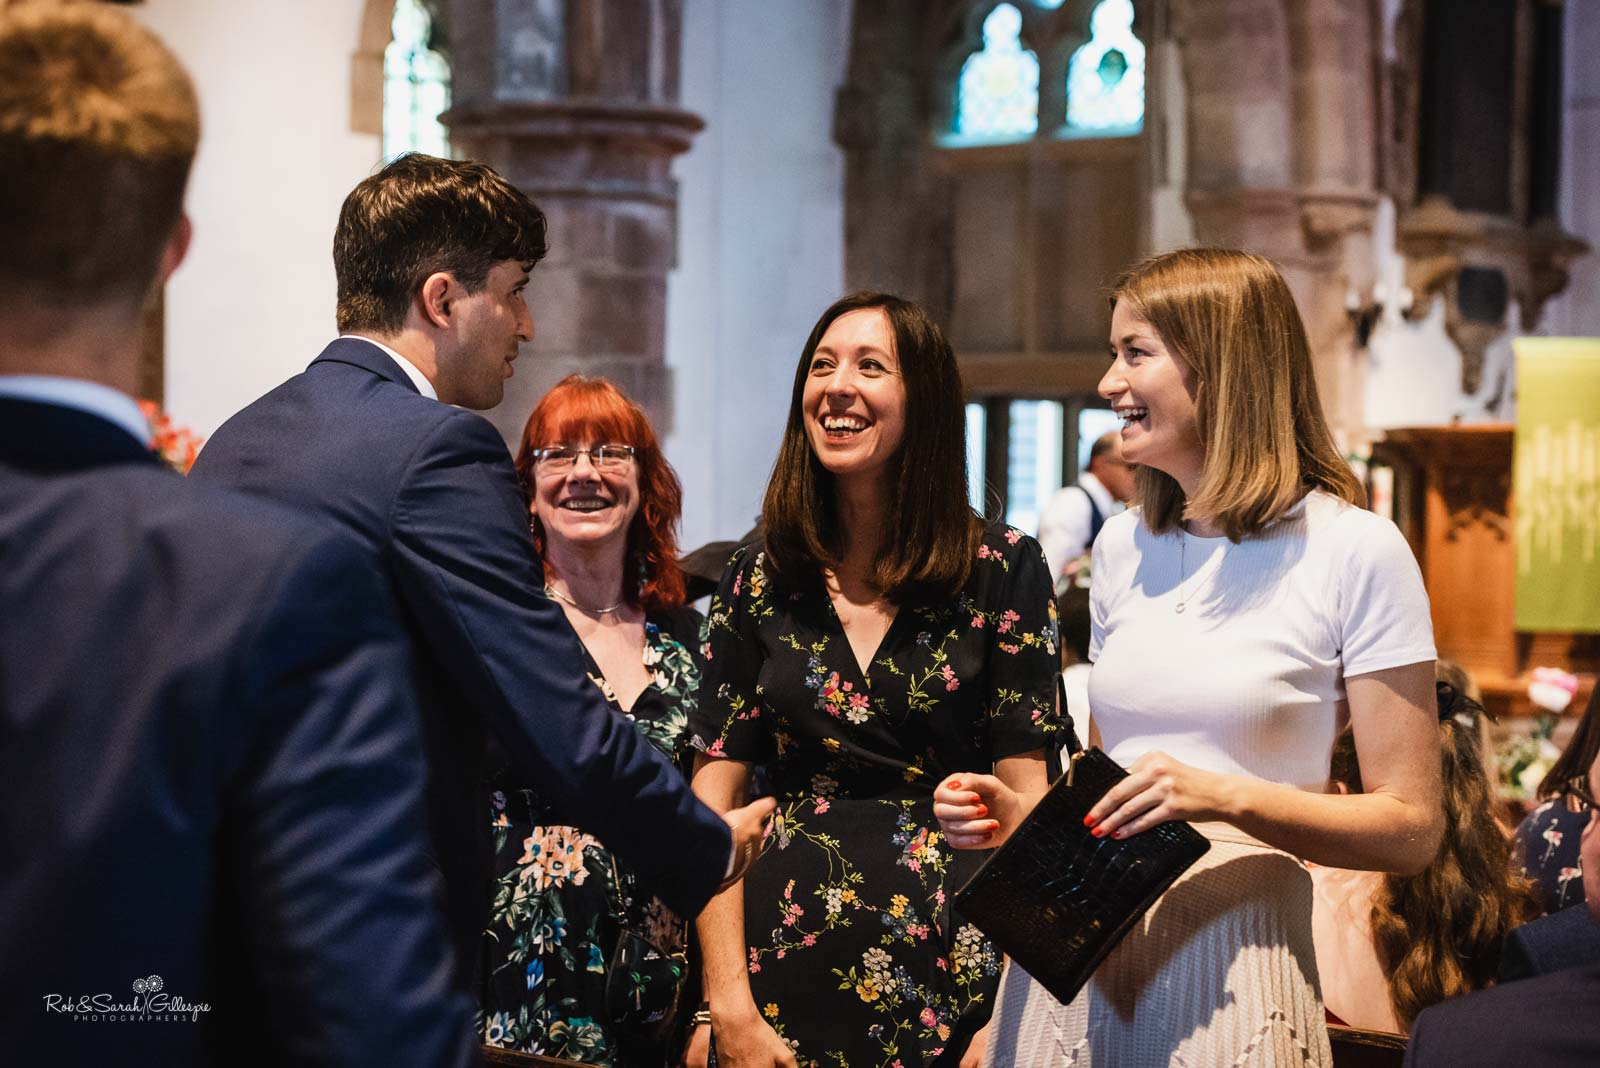 Groom greets wedding guests at Hampton-in-Arden church